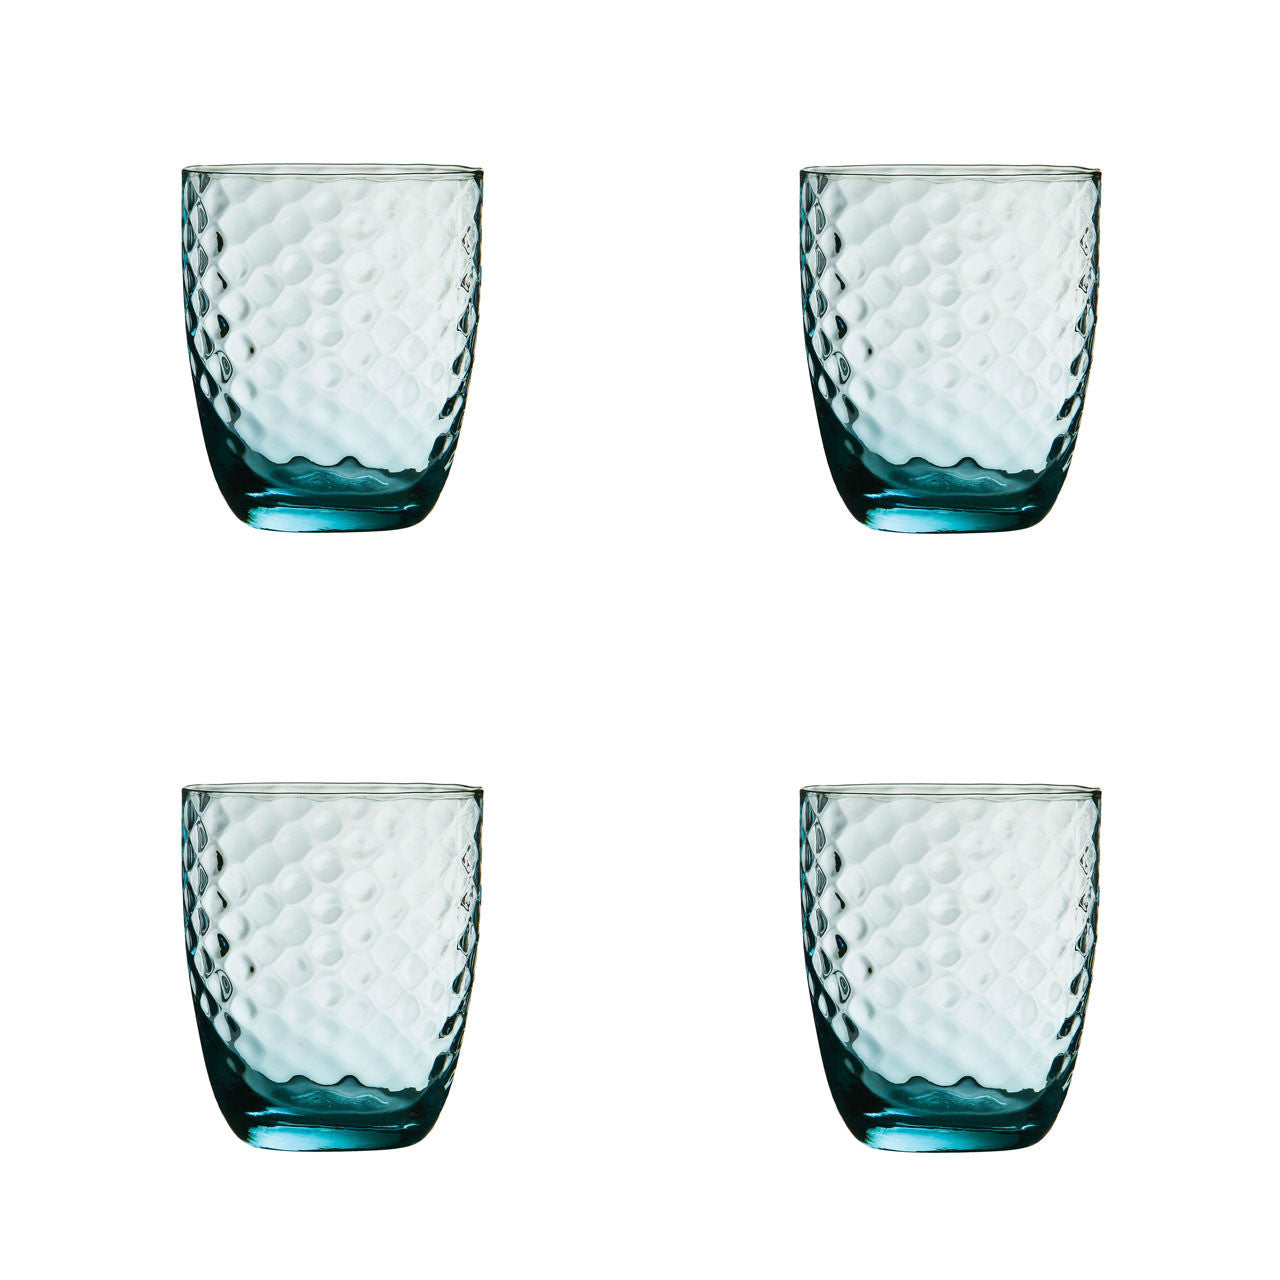 PREMIER S/4 ARTIC BLUE GLASS TUMBLERS-1404759 - Homely Nigeria